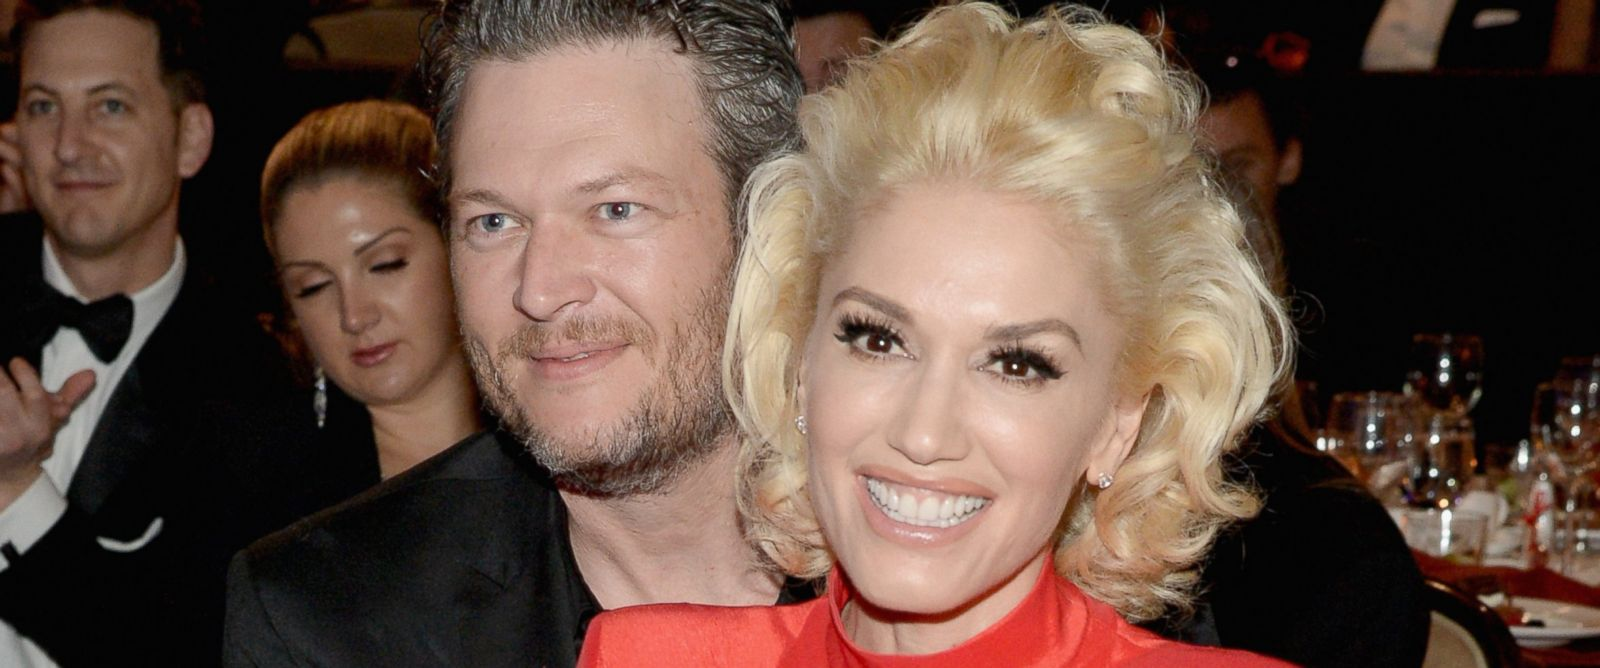 PHOTO: Blake Shelton and Gwen Stefani attend the 2016 Pre-GRAMMY Gala and Salute to Industry Icons honoring Irving Azoff at The Beverly Hilton Hotel, Feb. 14, 2016, in Beverly Hills, California.